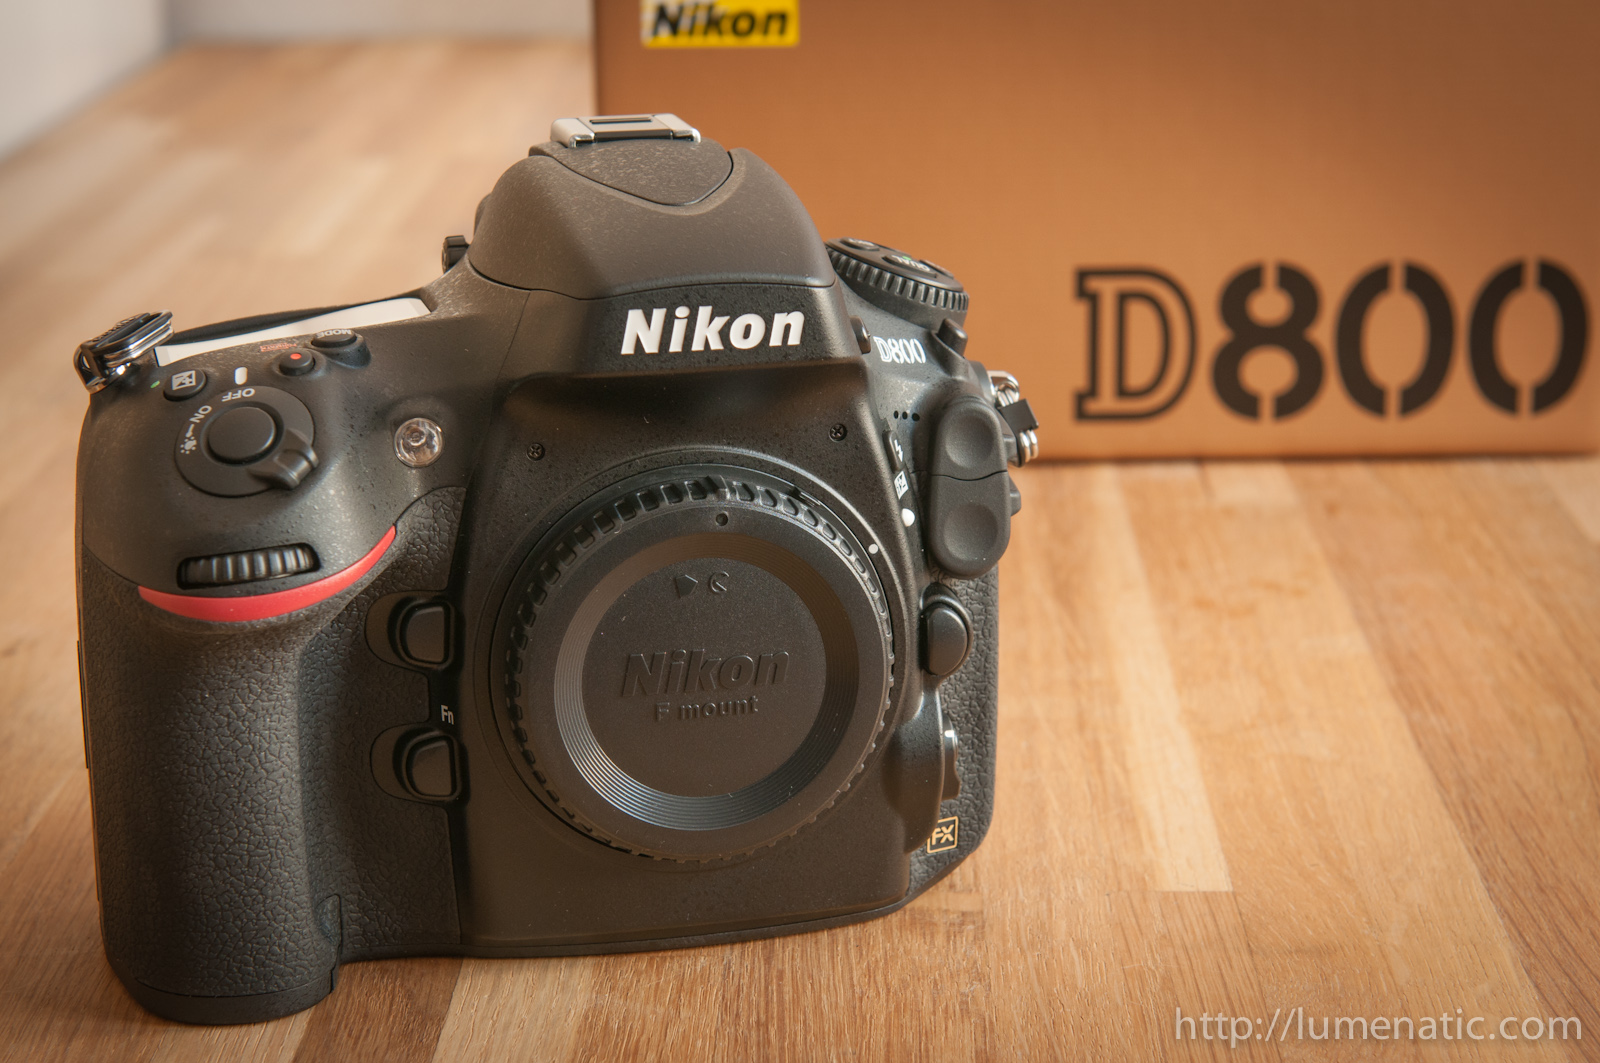 D800 and wireless flash photography problems